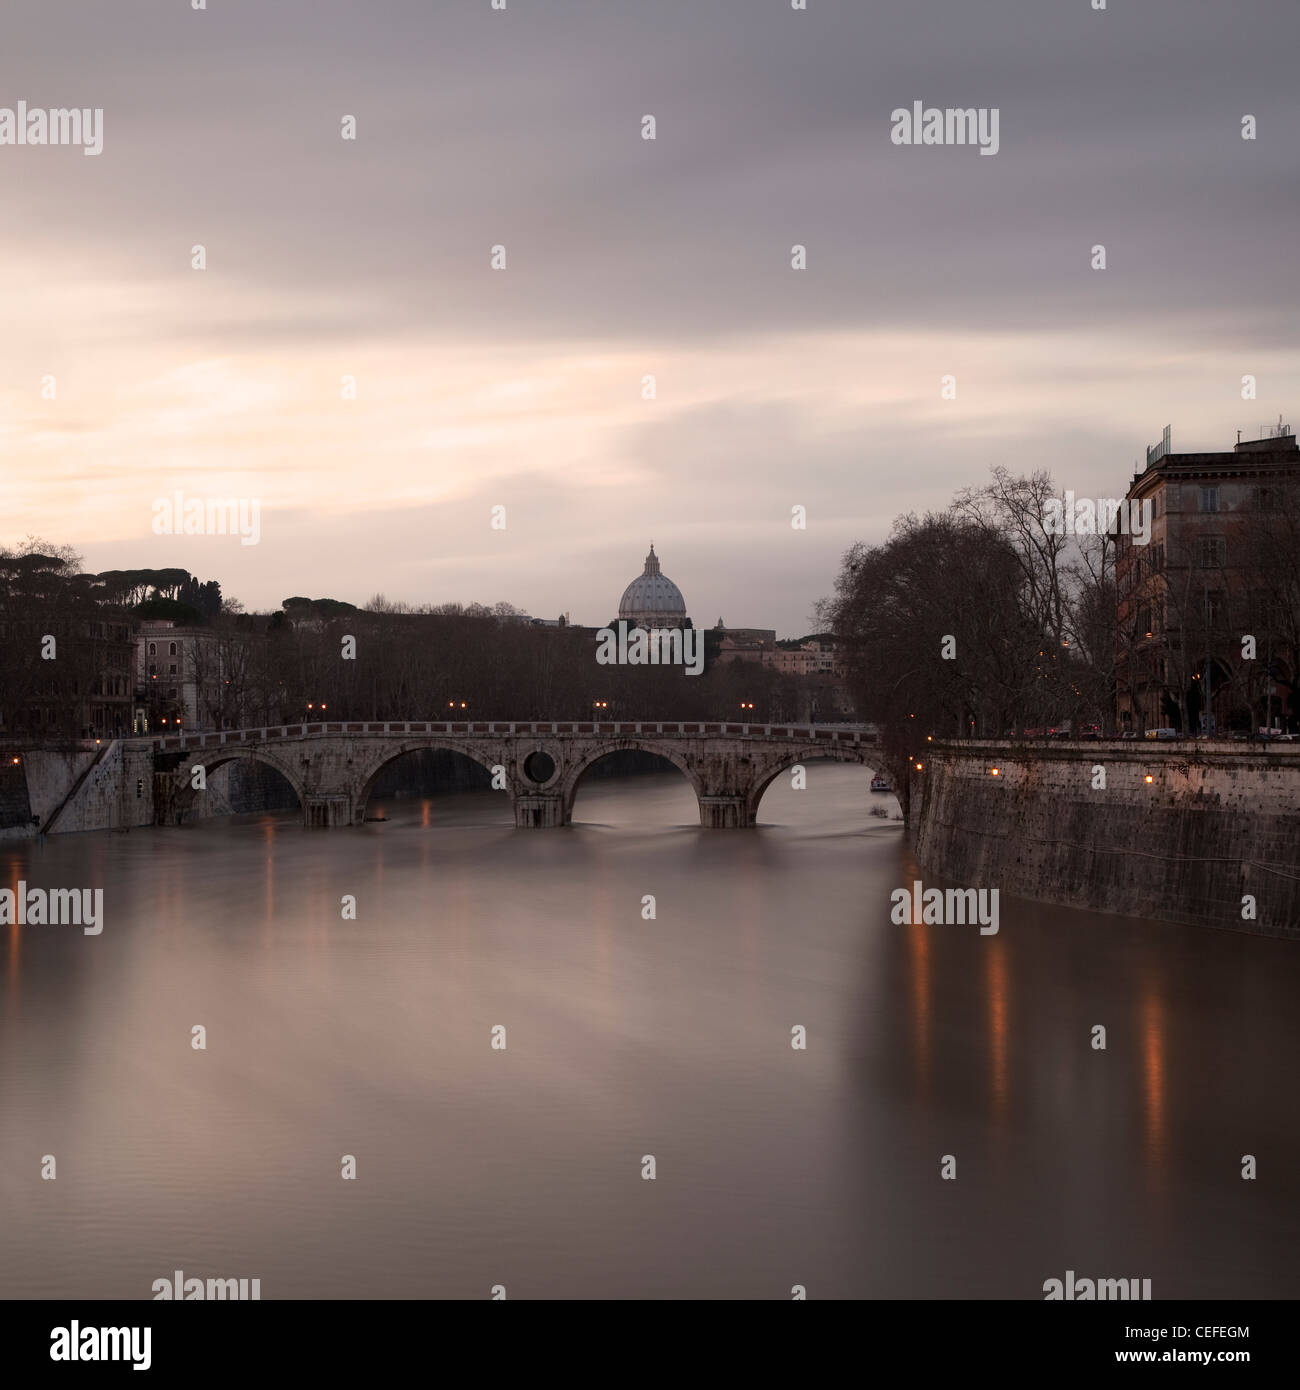 Time lapse view of bridge over river Stock Photo